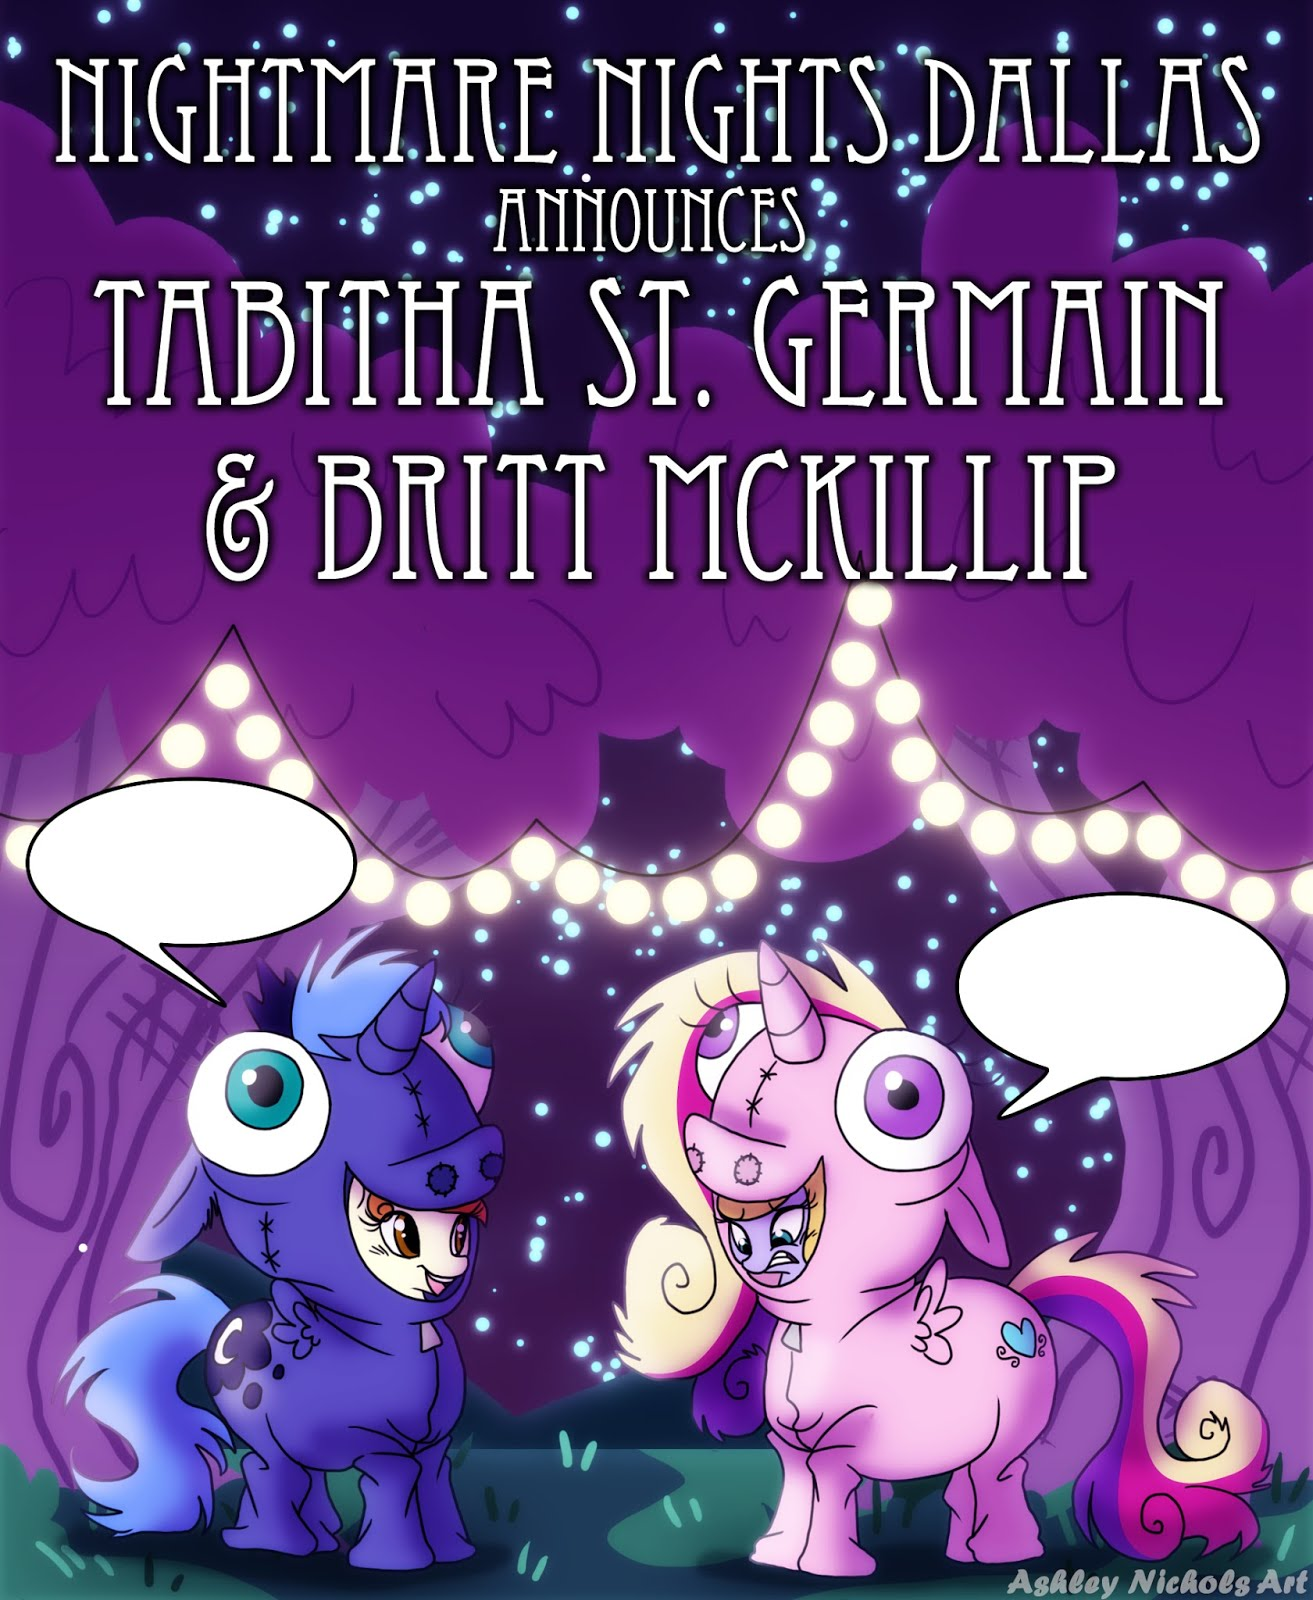 tabitha and britt announcement.jpg